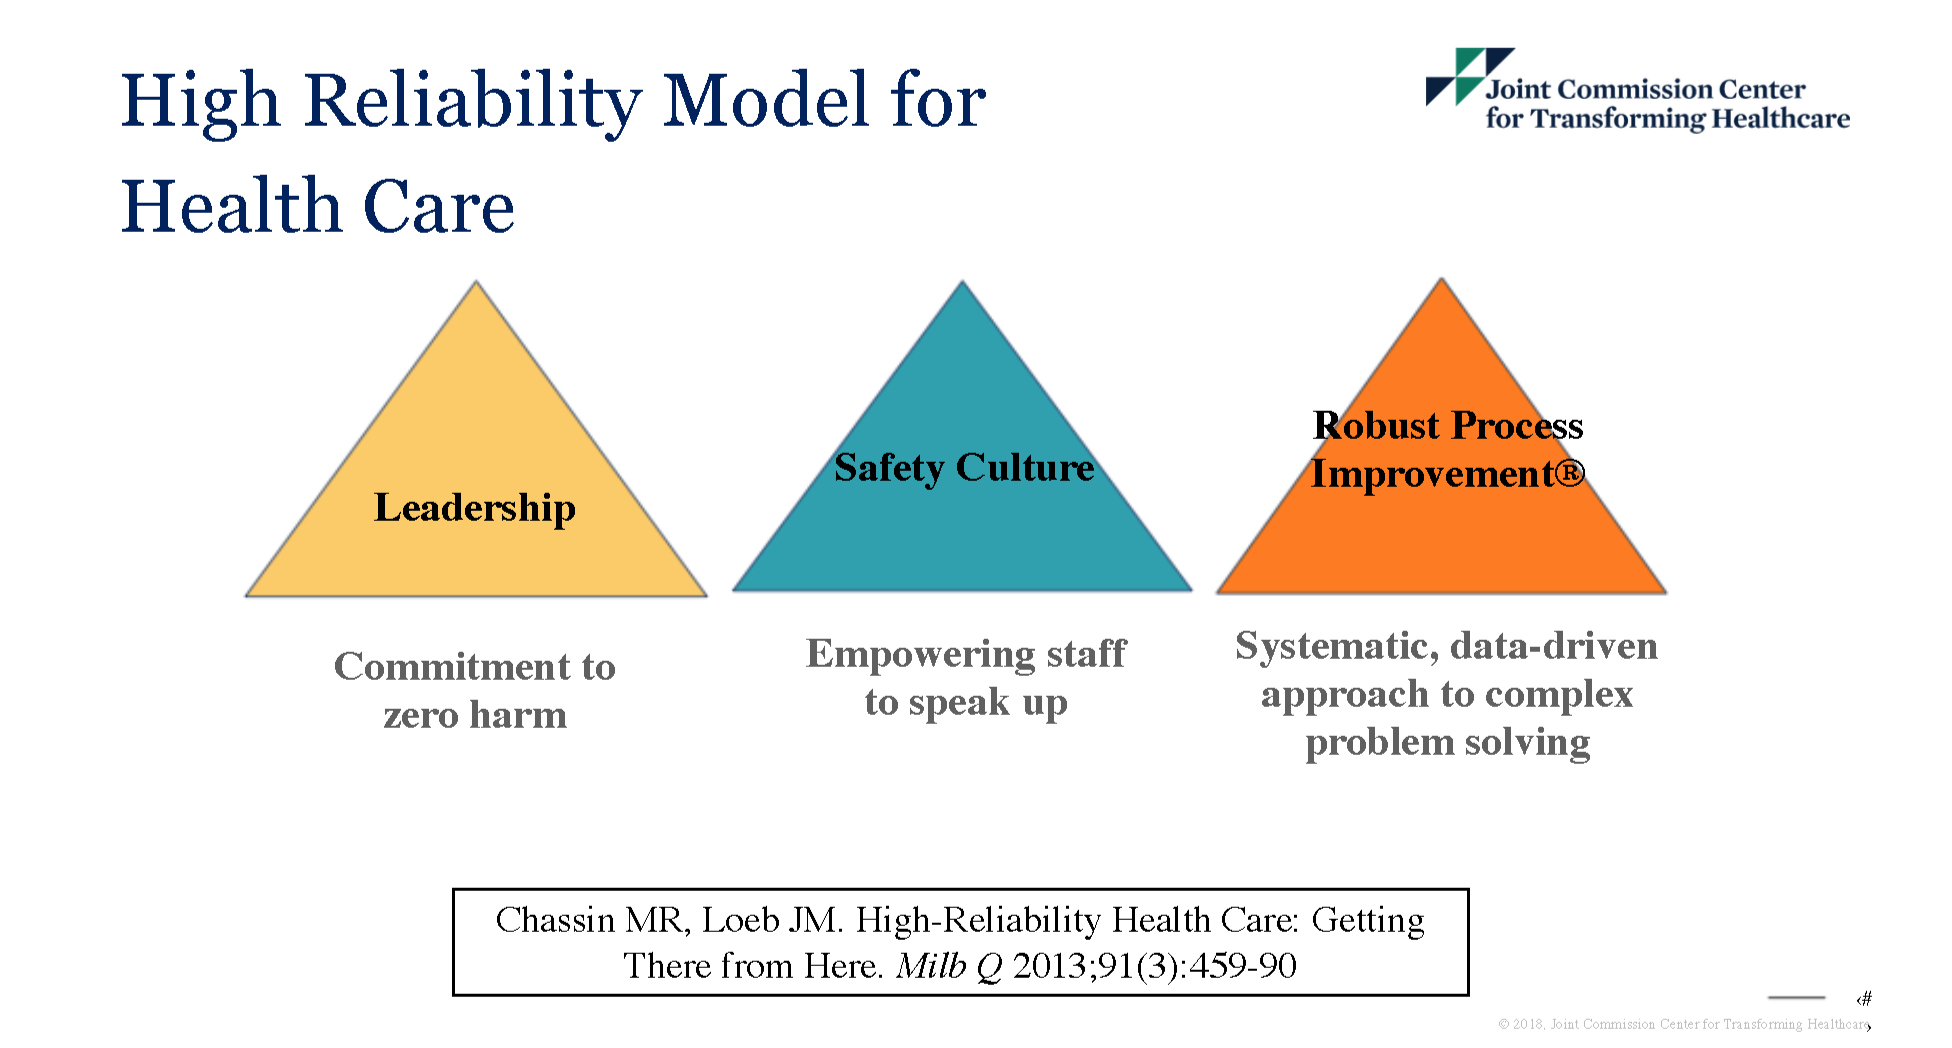 Building a High Reliability Culture in Healthcare